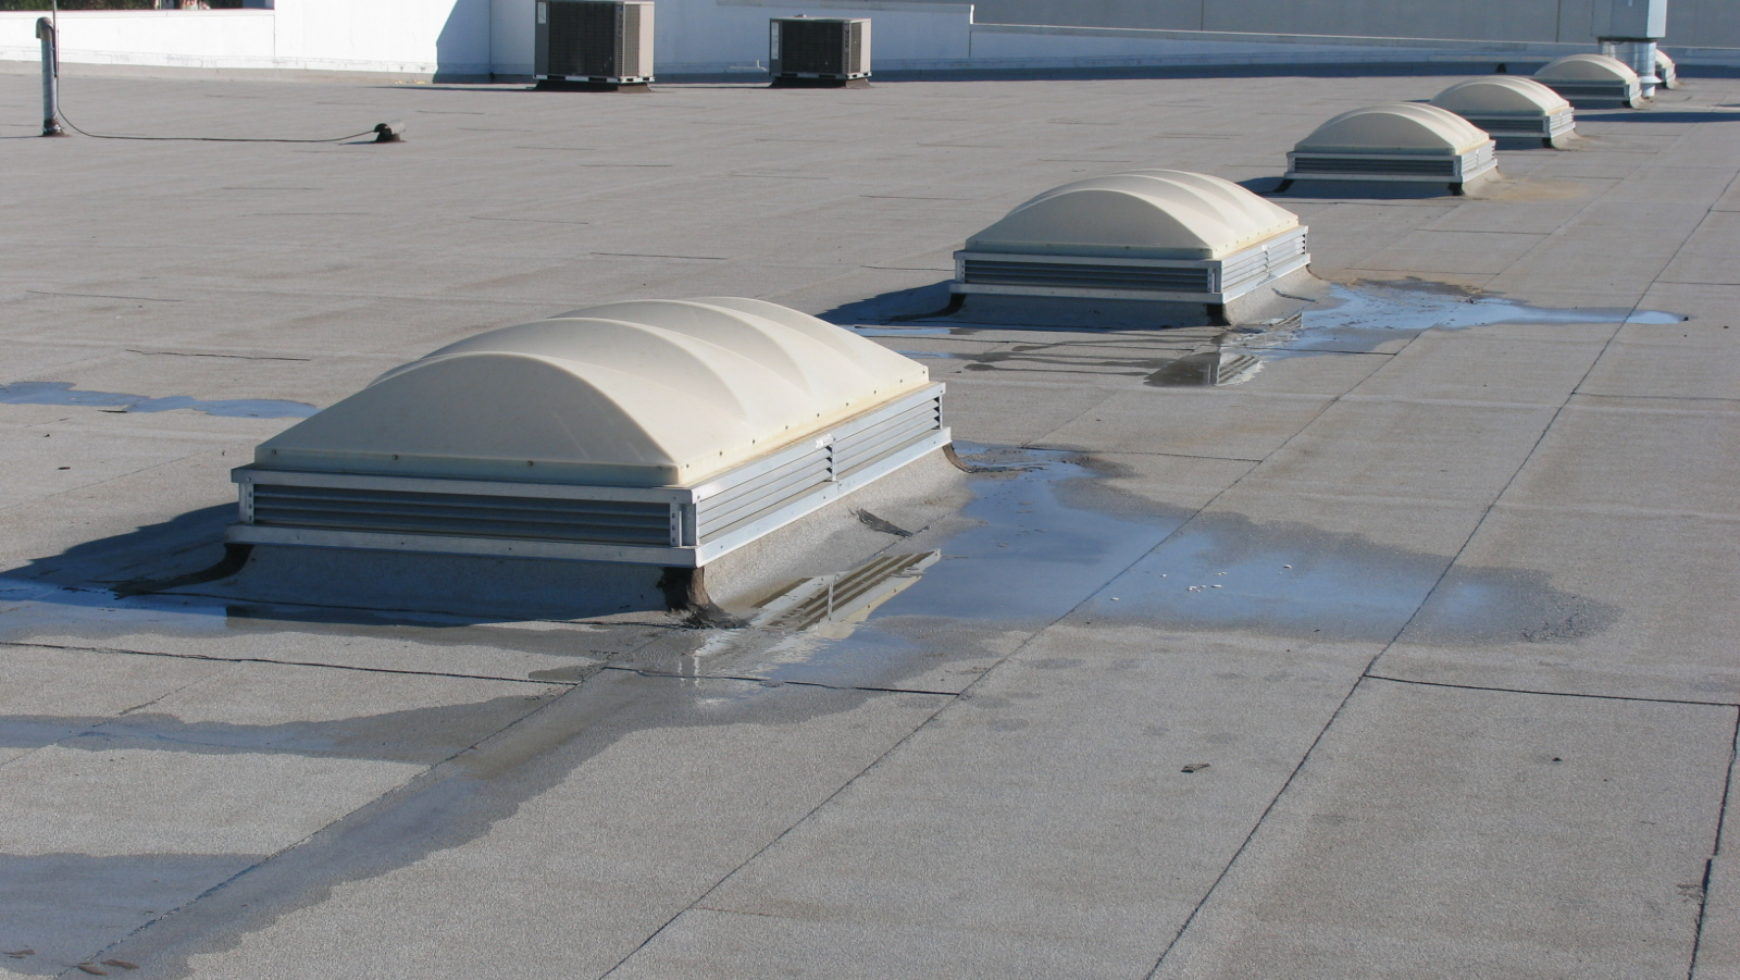 Flat Commercial Roof Skylights: Benefits and Drawbacks